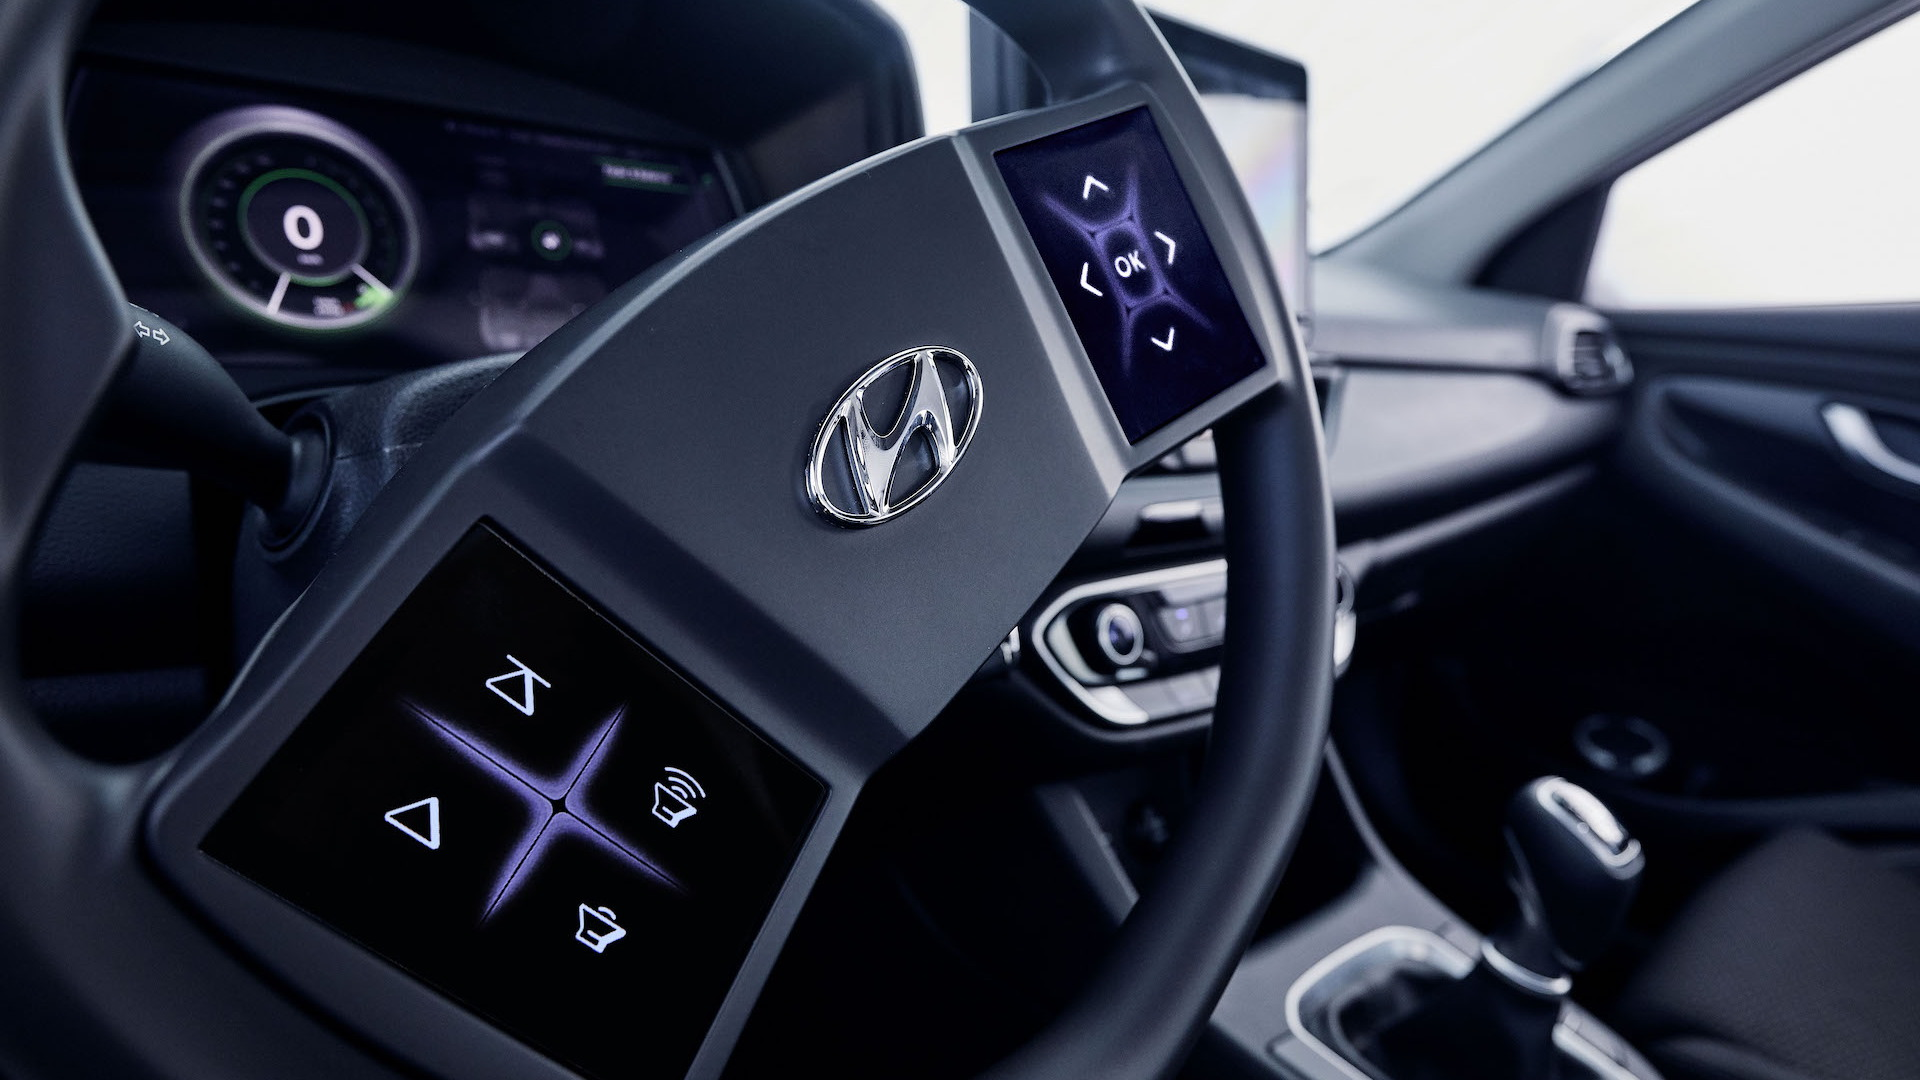 Hyundai next-generation cockpit prototype